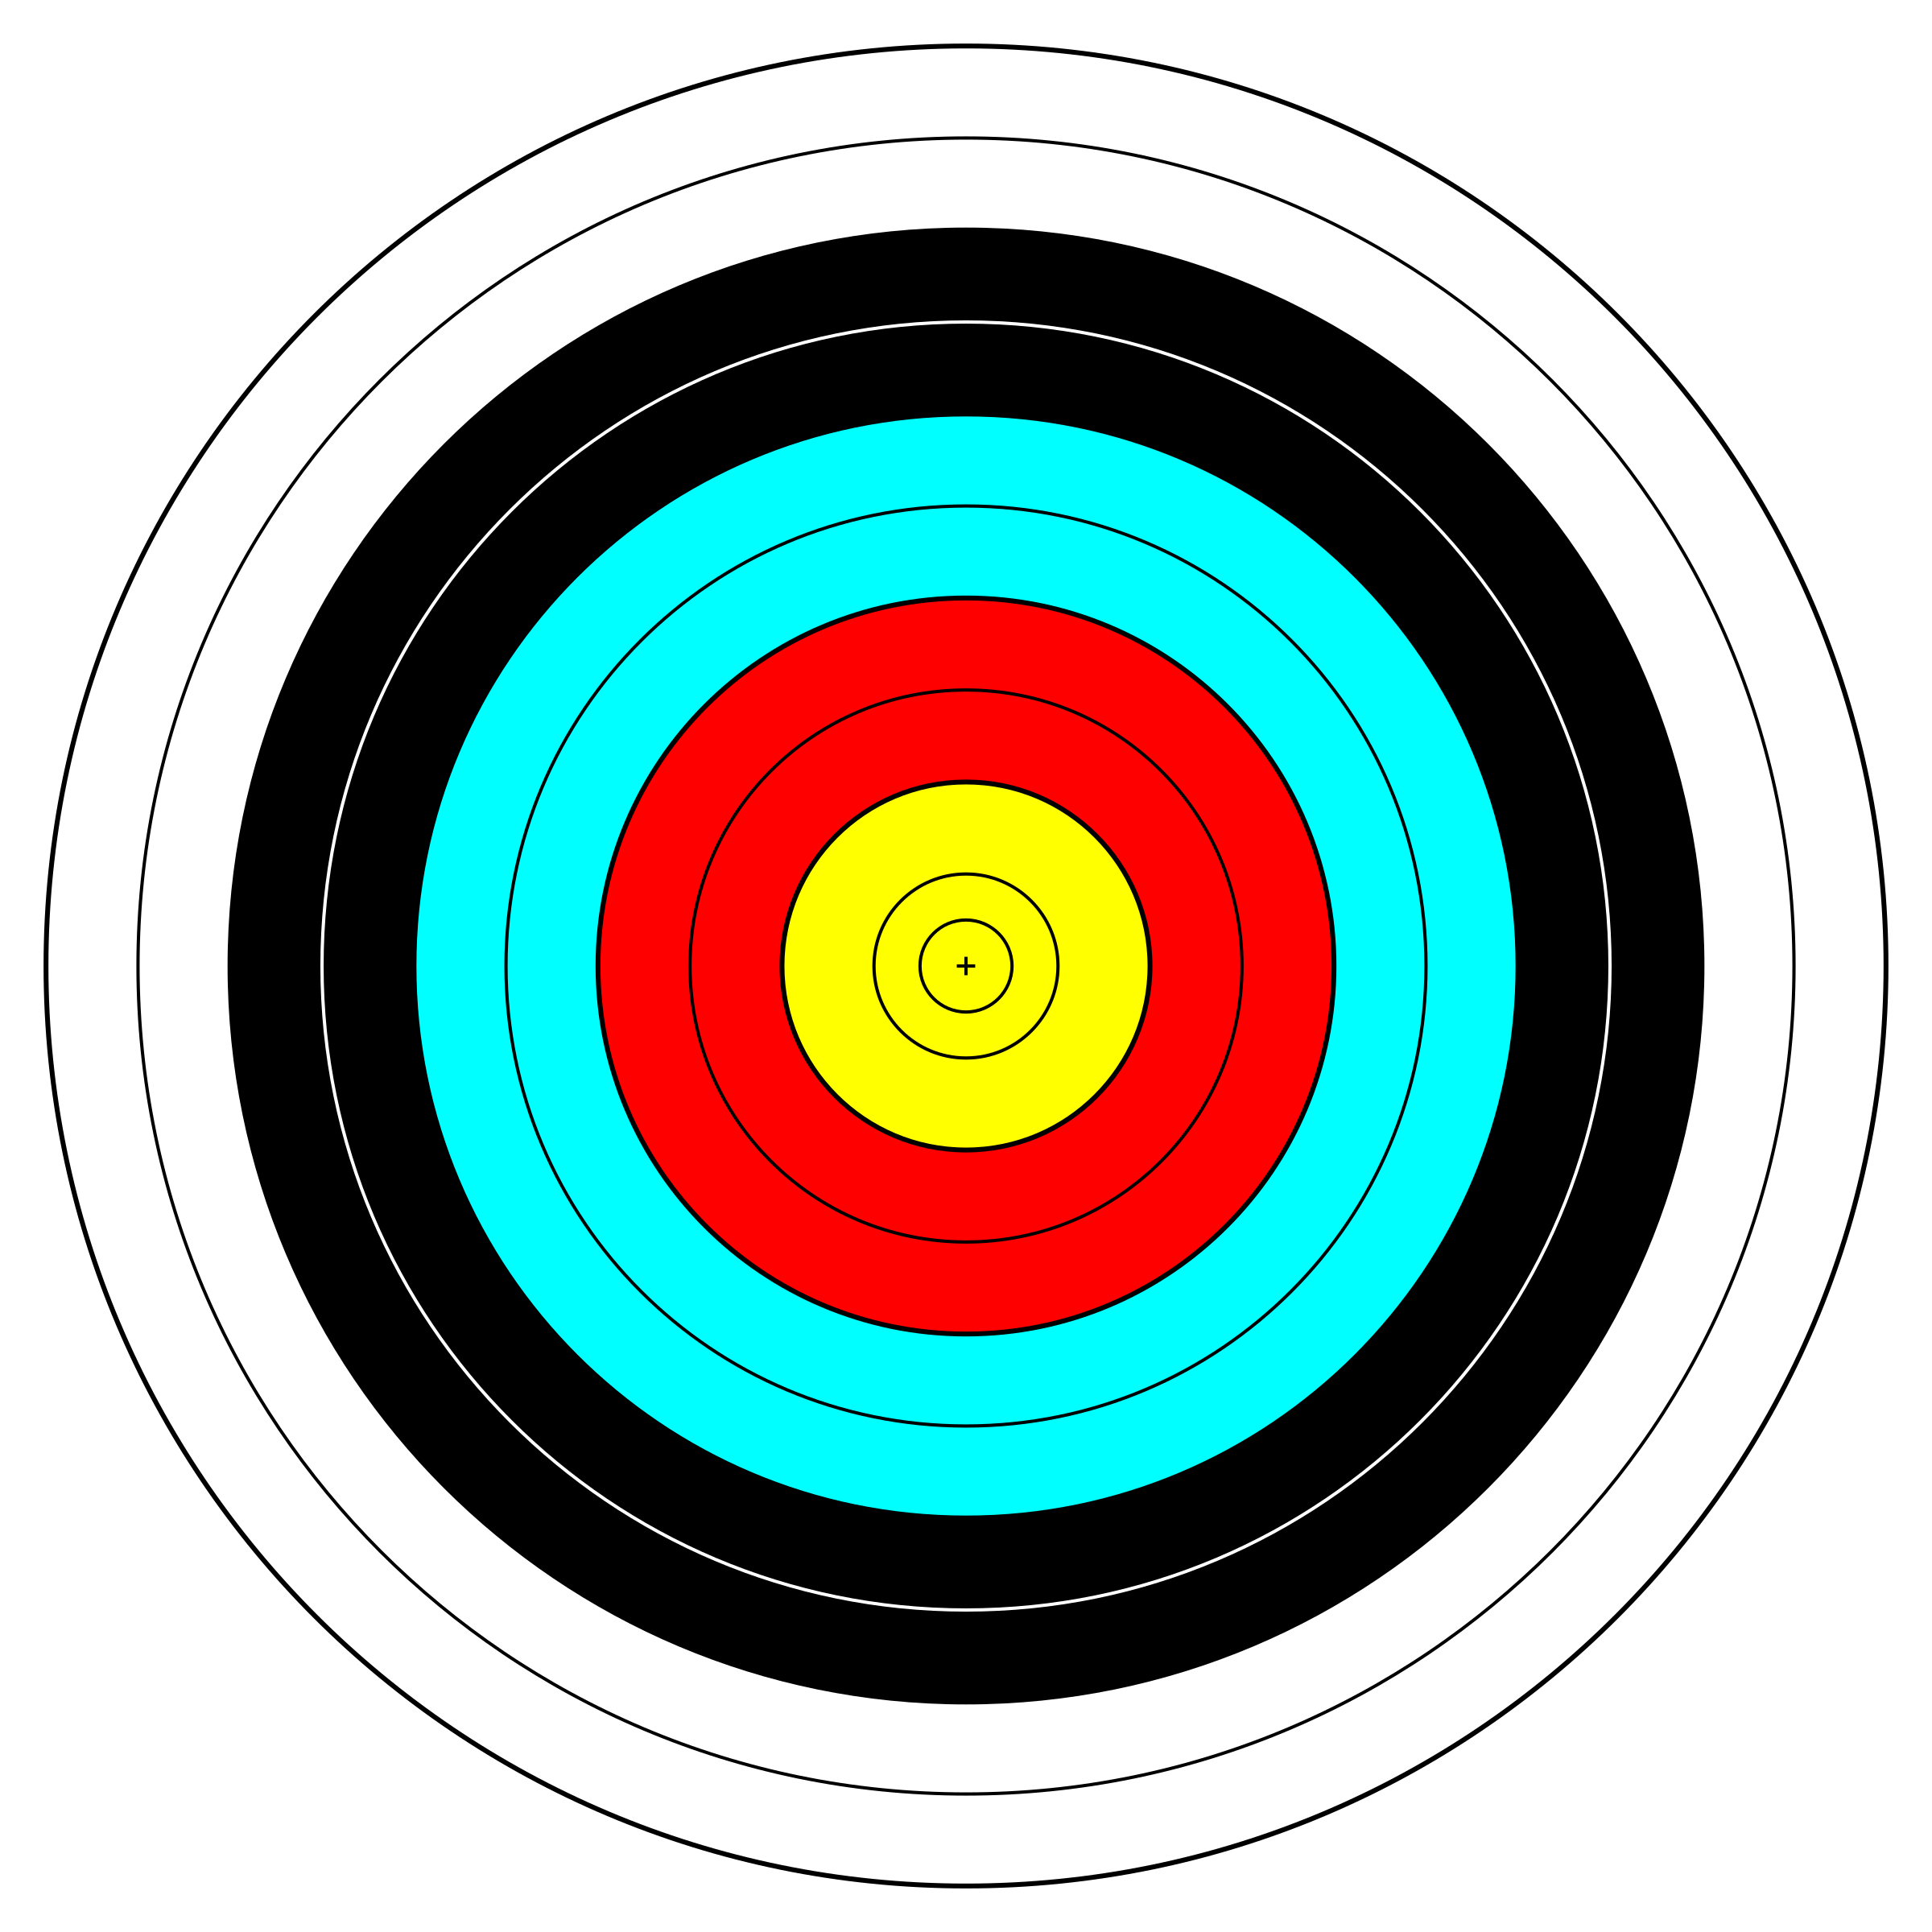 jpg royalty free library Setting targets and goals. Bullseye clipart target gun